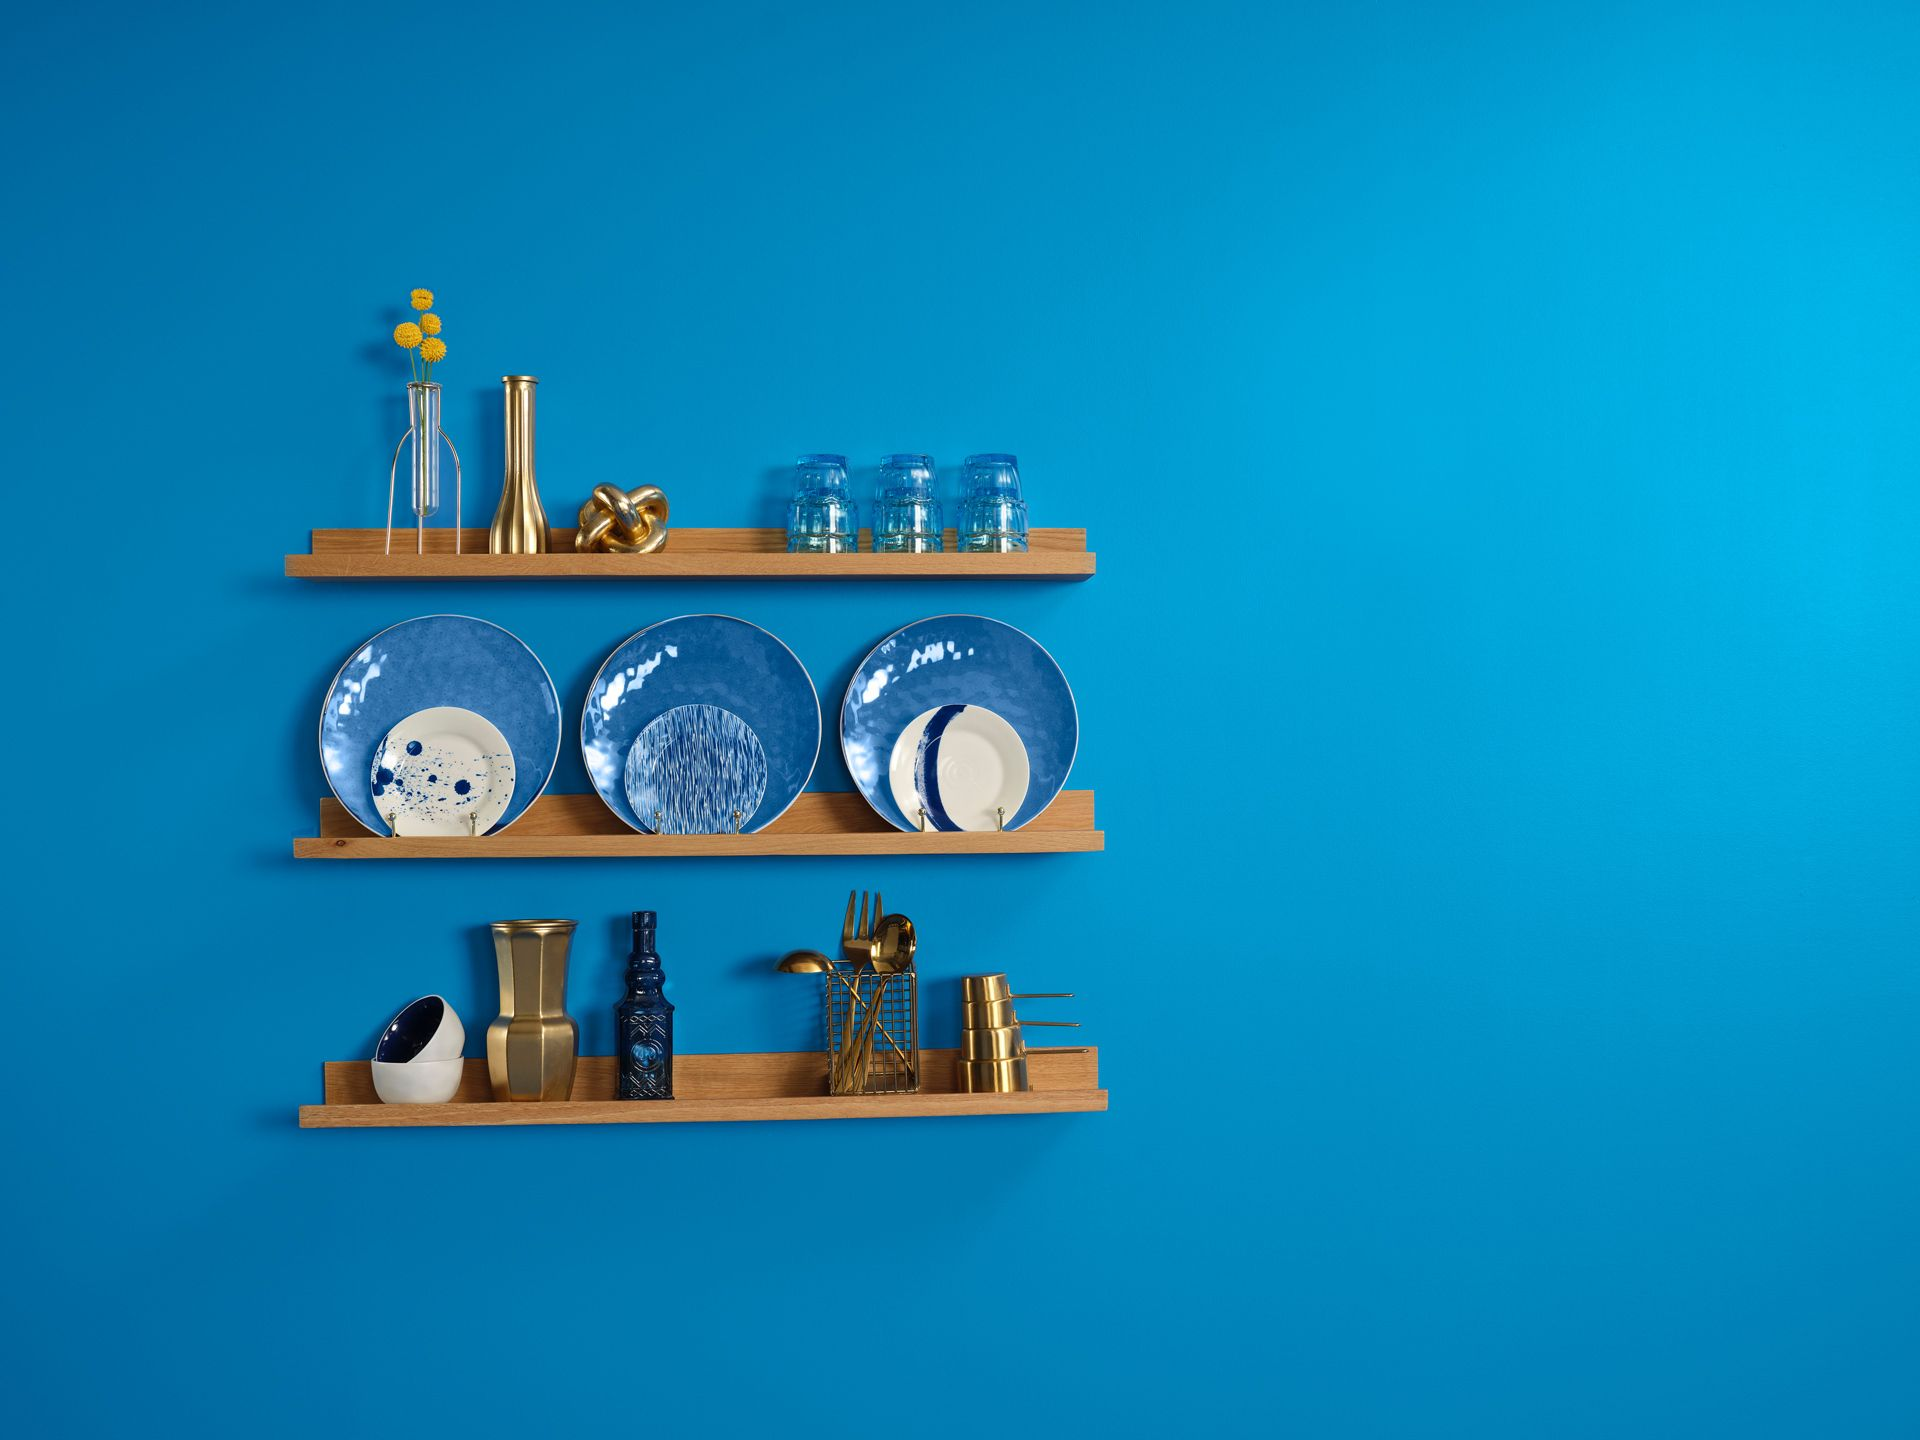 Blue wall with wood shelves and gold or blue kitchen objects on them.